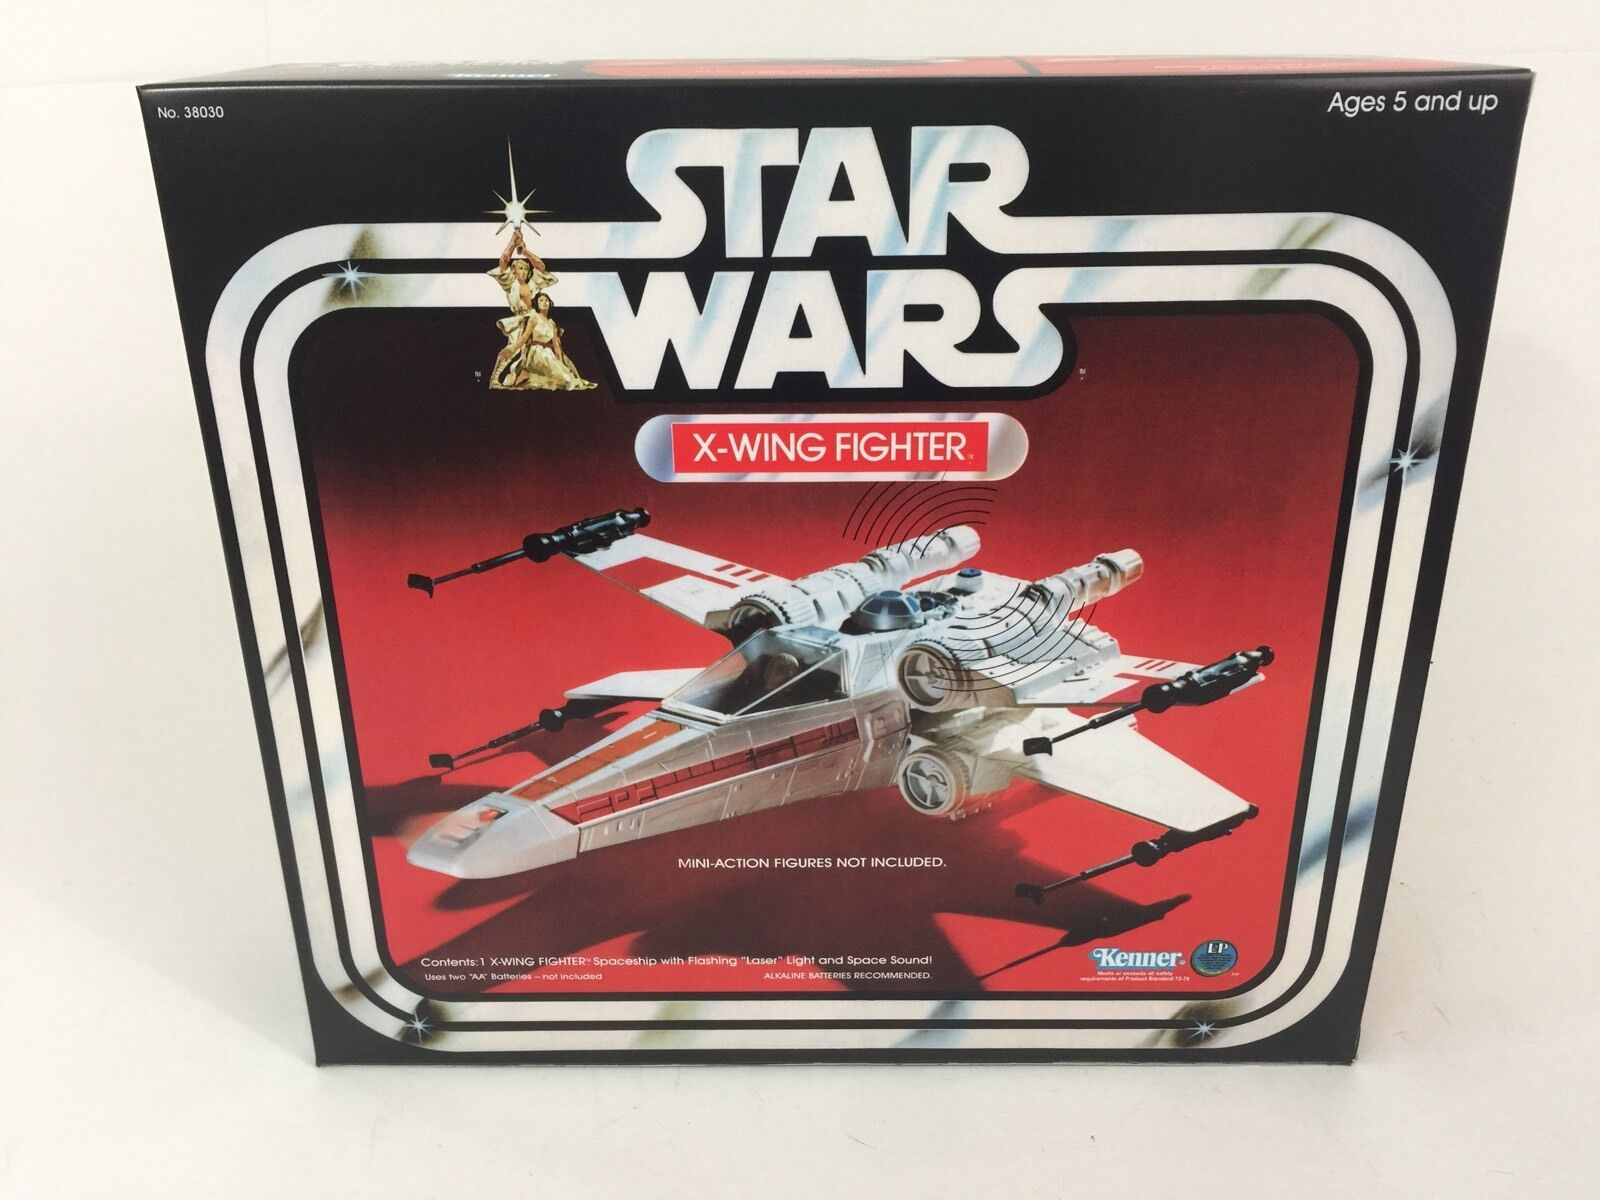 Replacement vintage star wars 1st edition edition edition x-wing box + inserts 704df3